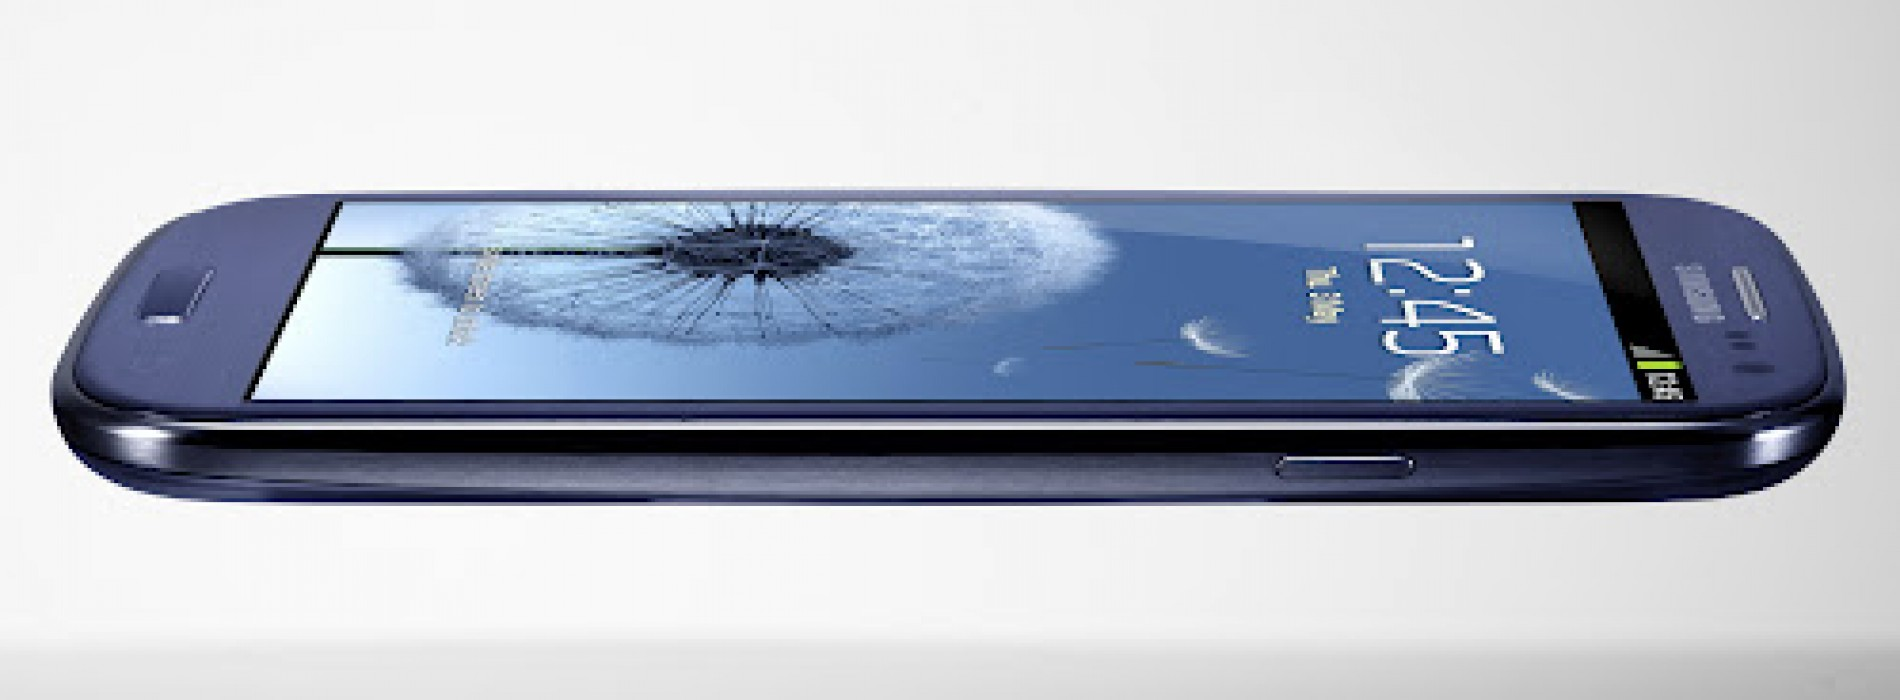 Galaxy S III announced, 'inspired by nature'